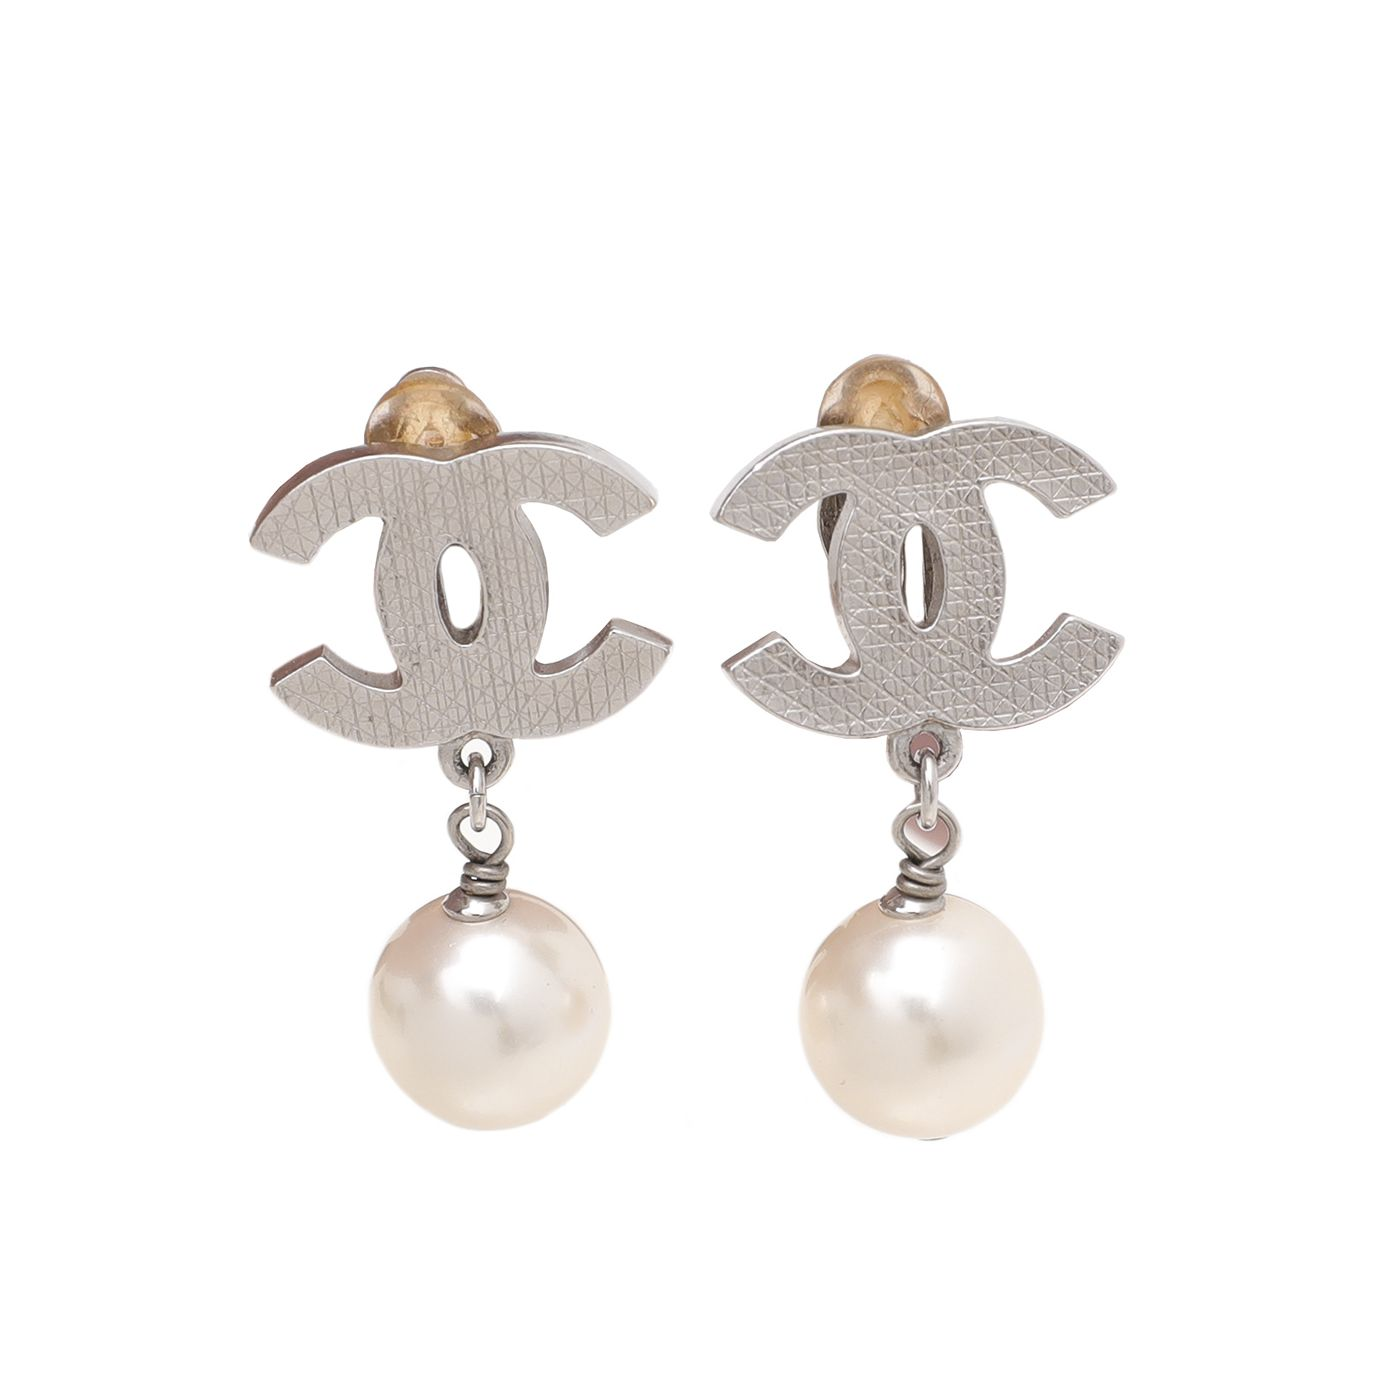 Chanel White CC Crystal Pearl Clip On Earrings